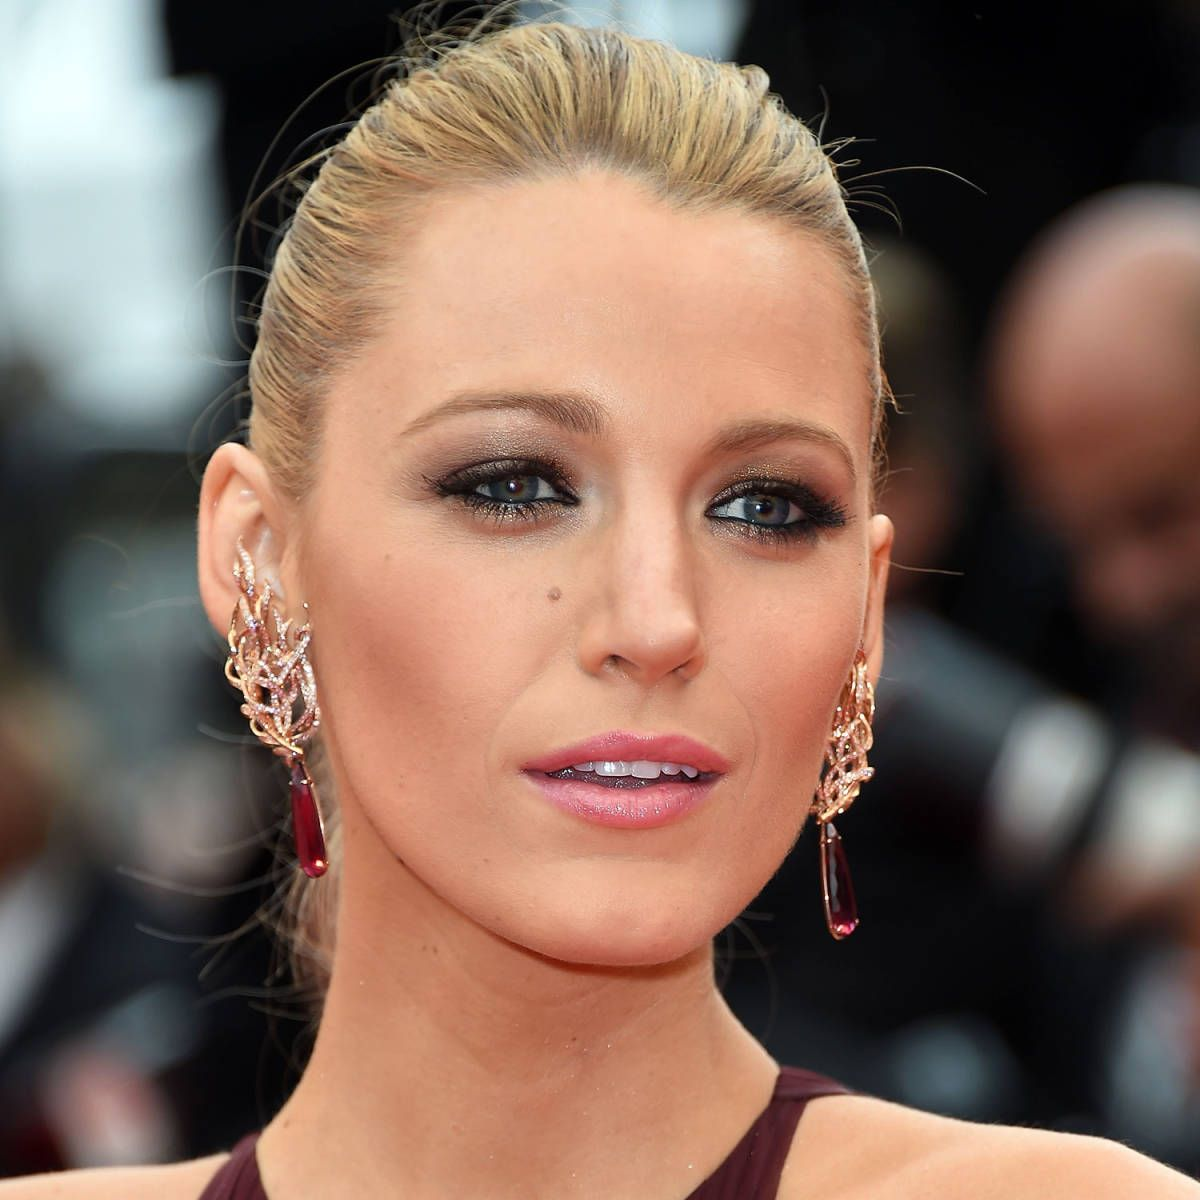 blake lively red dress makeup - photo #4